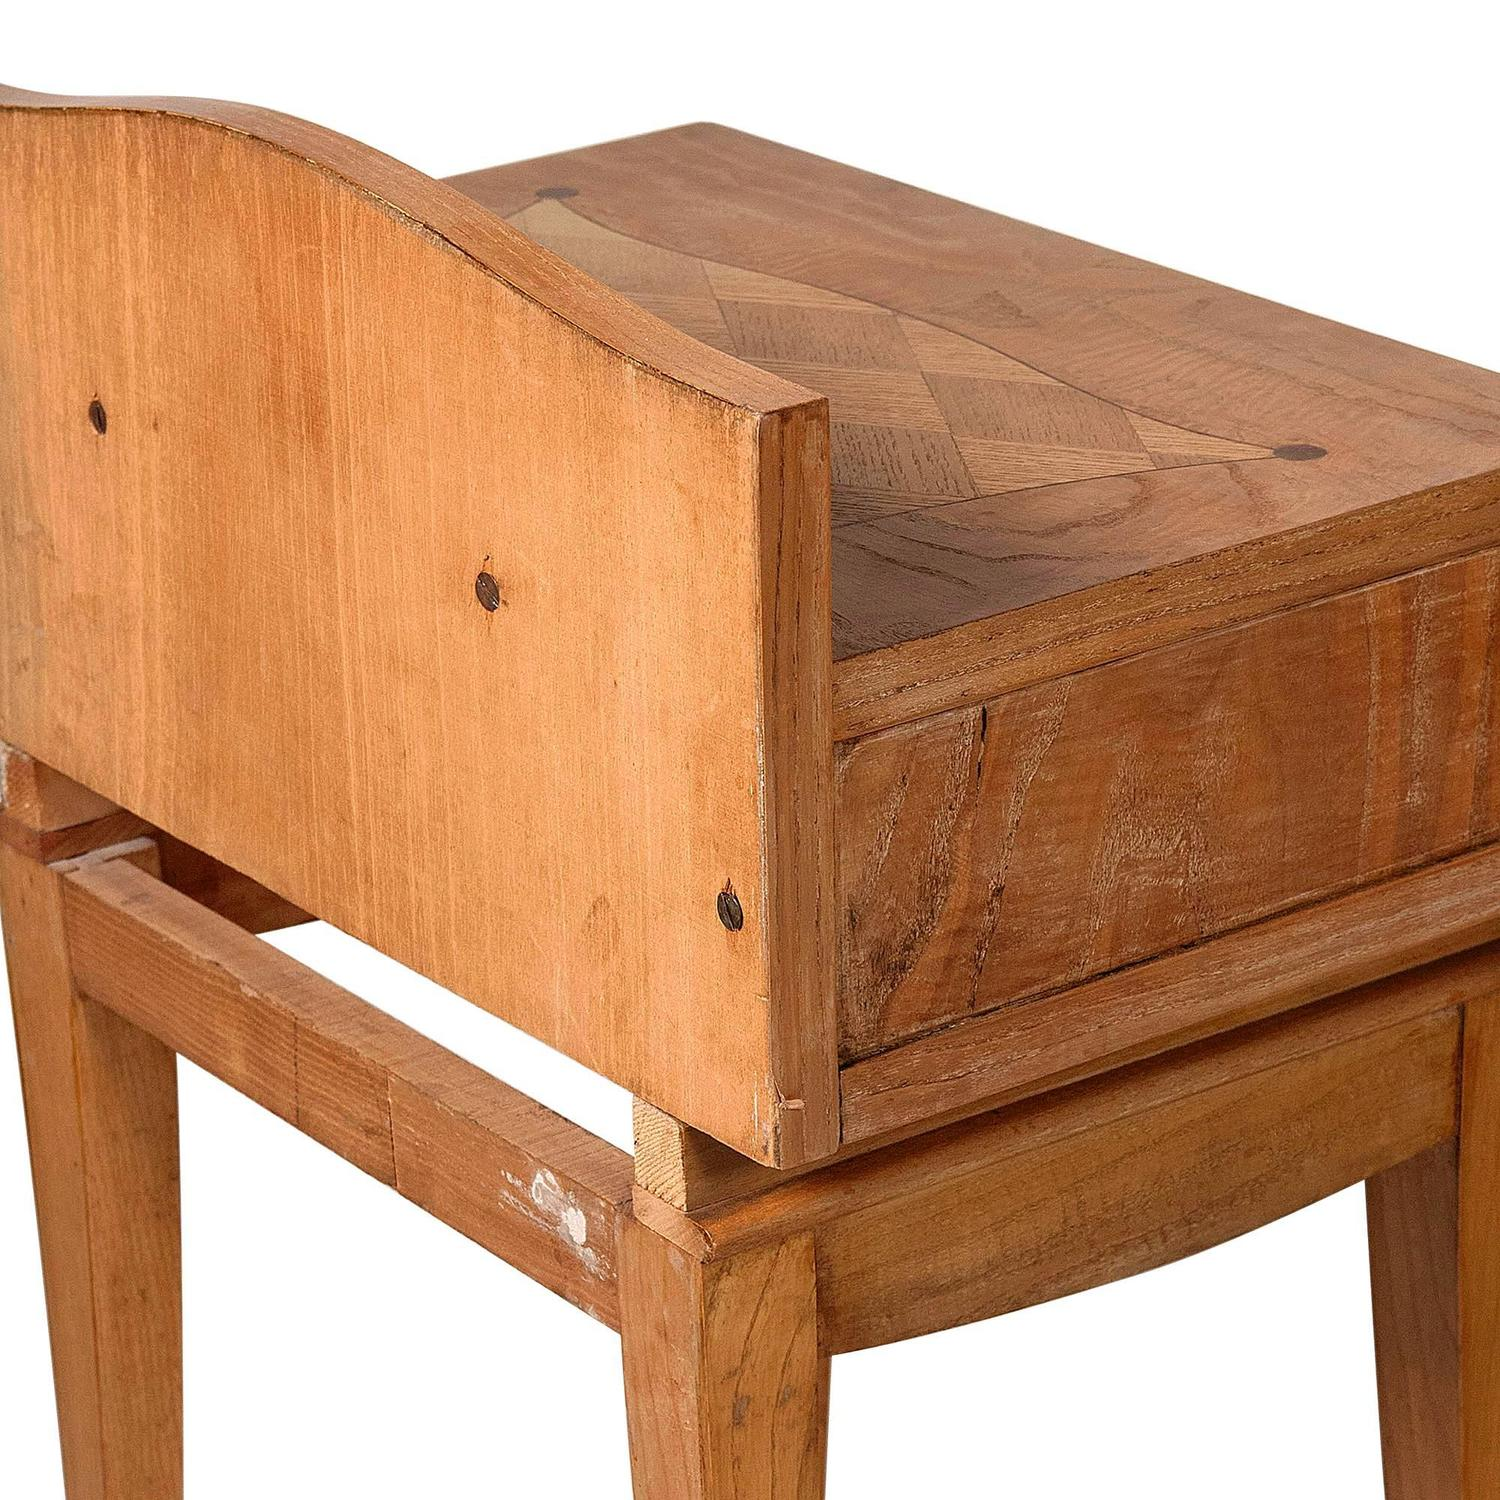 French Oak Inlaid End Tables For Sale At 1stdibs. Full resolution  photograph, nominally Width 1500 Height 1500 pixels, photograph with #481908.